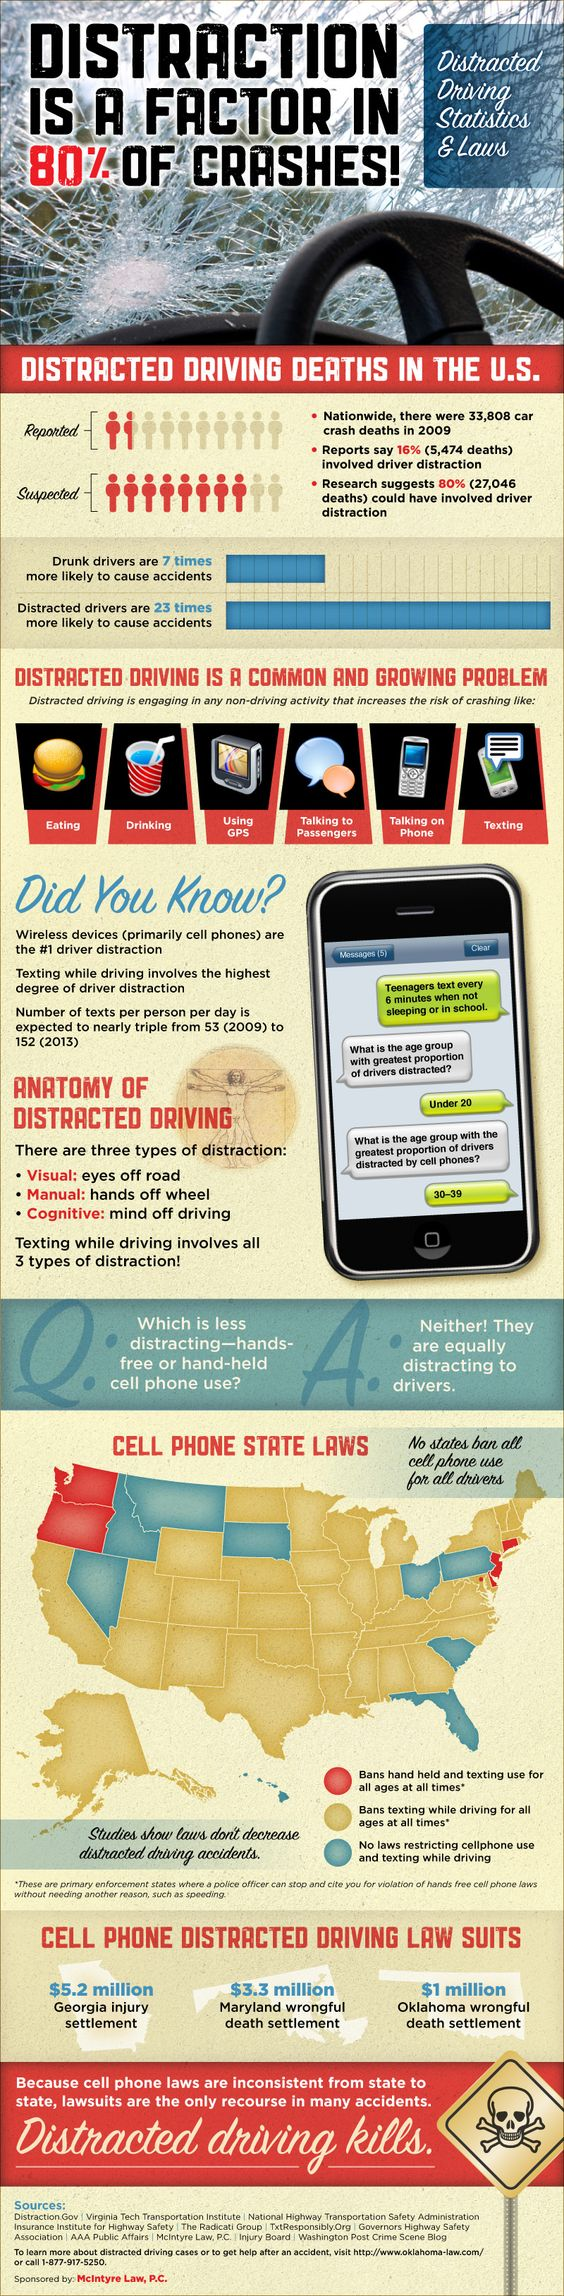 21 engrossing statistics and facts about distracted driving distracted driving facts